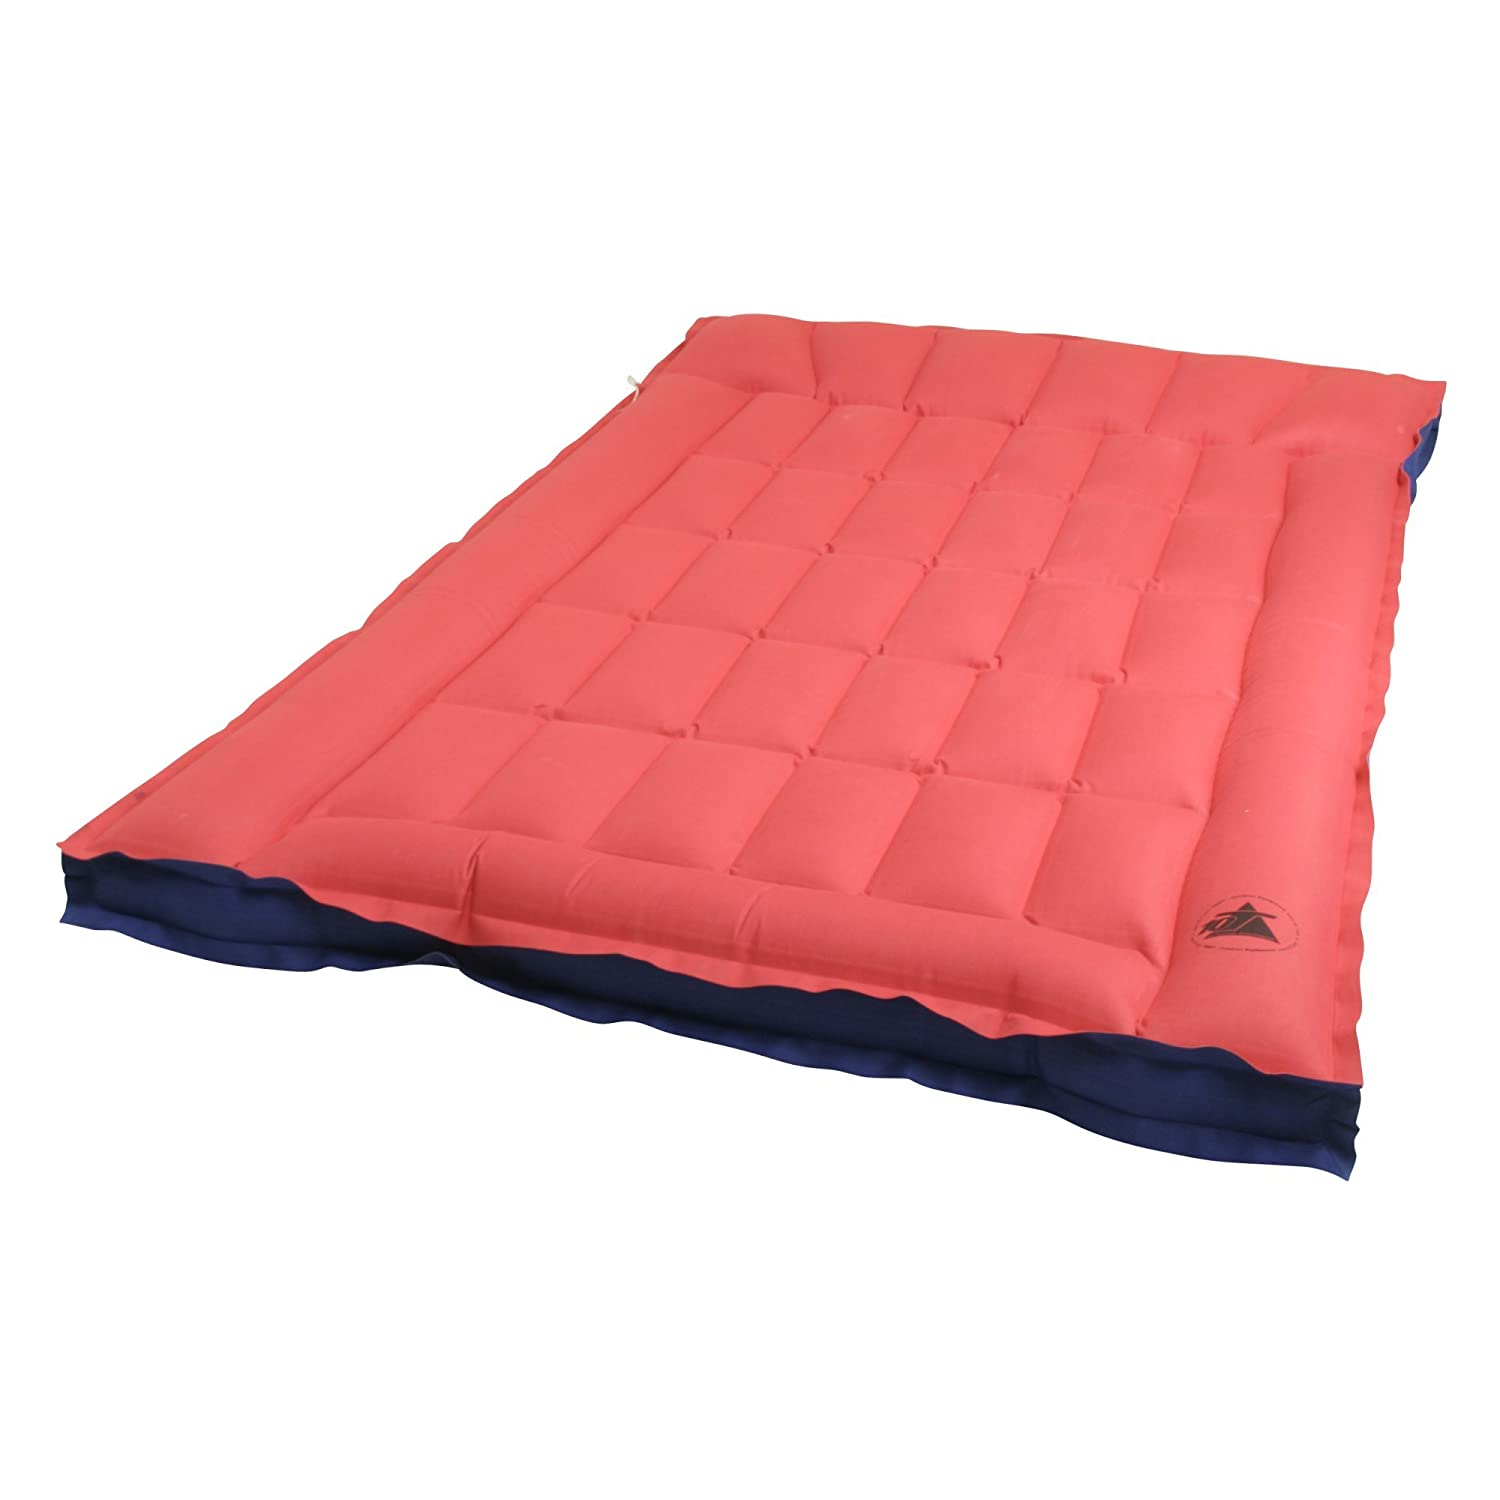 10T Ruby Double Box - Cotton double air mattress in a box shape with a top, wafer structure, 190x120x19 cm 10T Outdoor Equipment 760858 1020760858_rot_190x120x19 cm